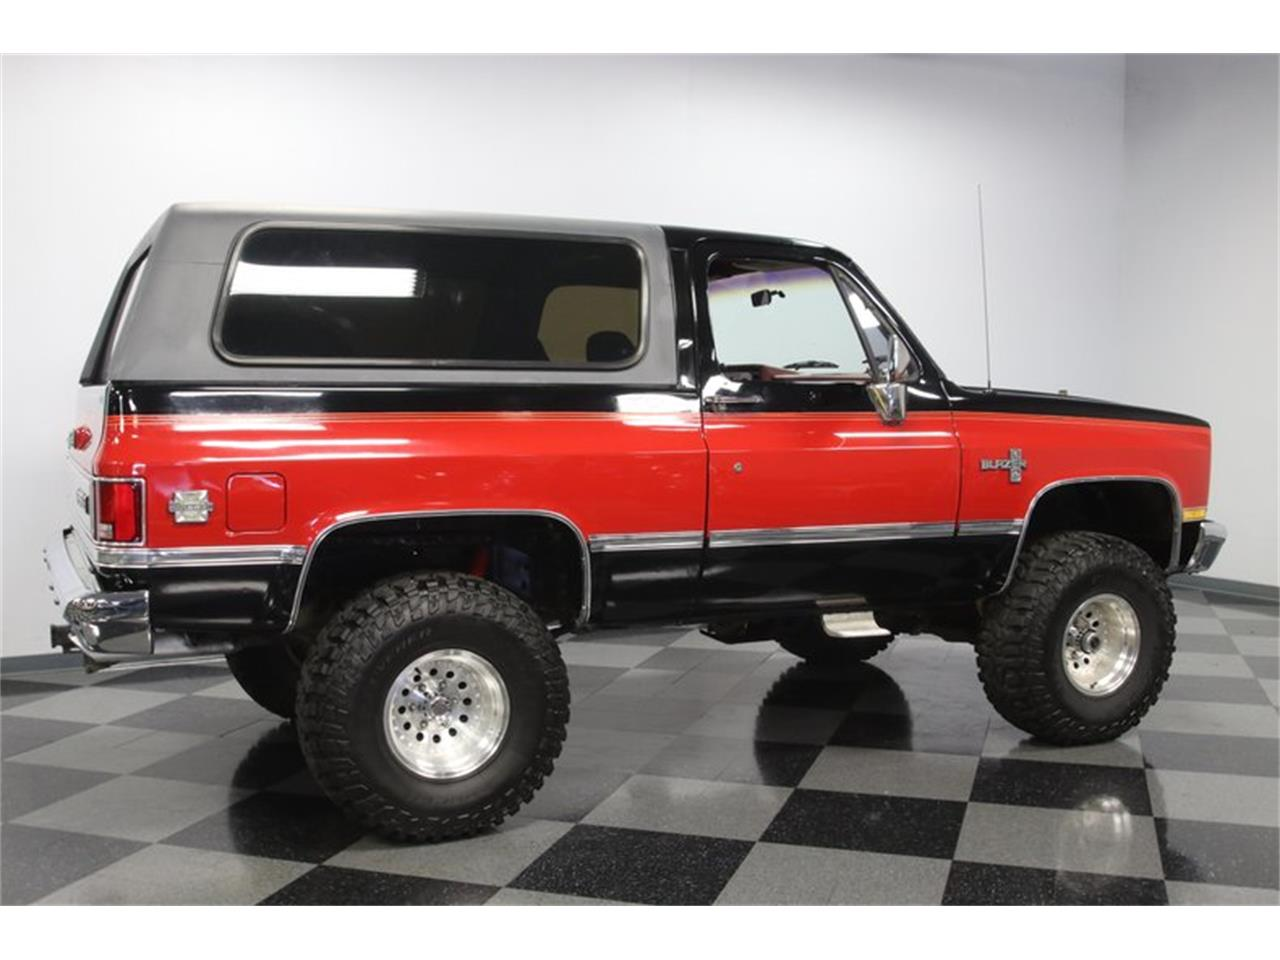 Large Picture of '88 Blazer located in Concord North Carolina - $26,995.00 Offered by Streetside Classics - Charlotte - QEFQ